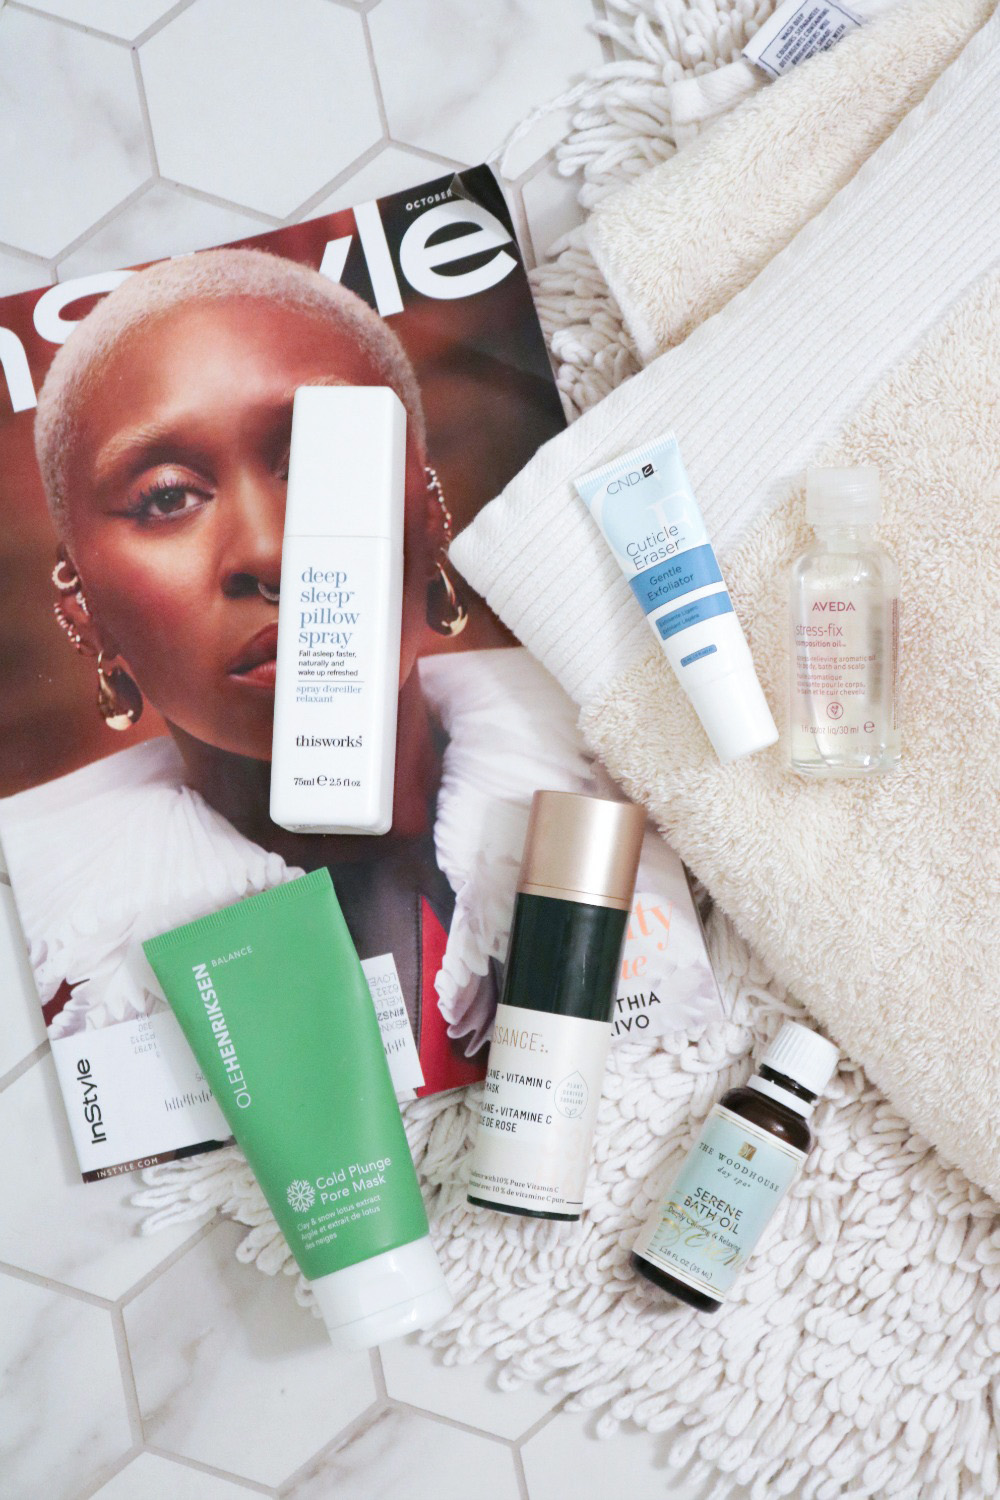 Favorite Self-Care Products I Skincare and Wellness #Selfcare #Skincare #BeautyTips